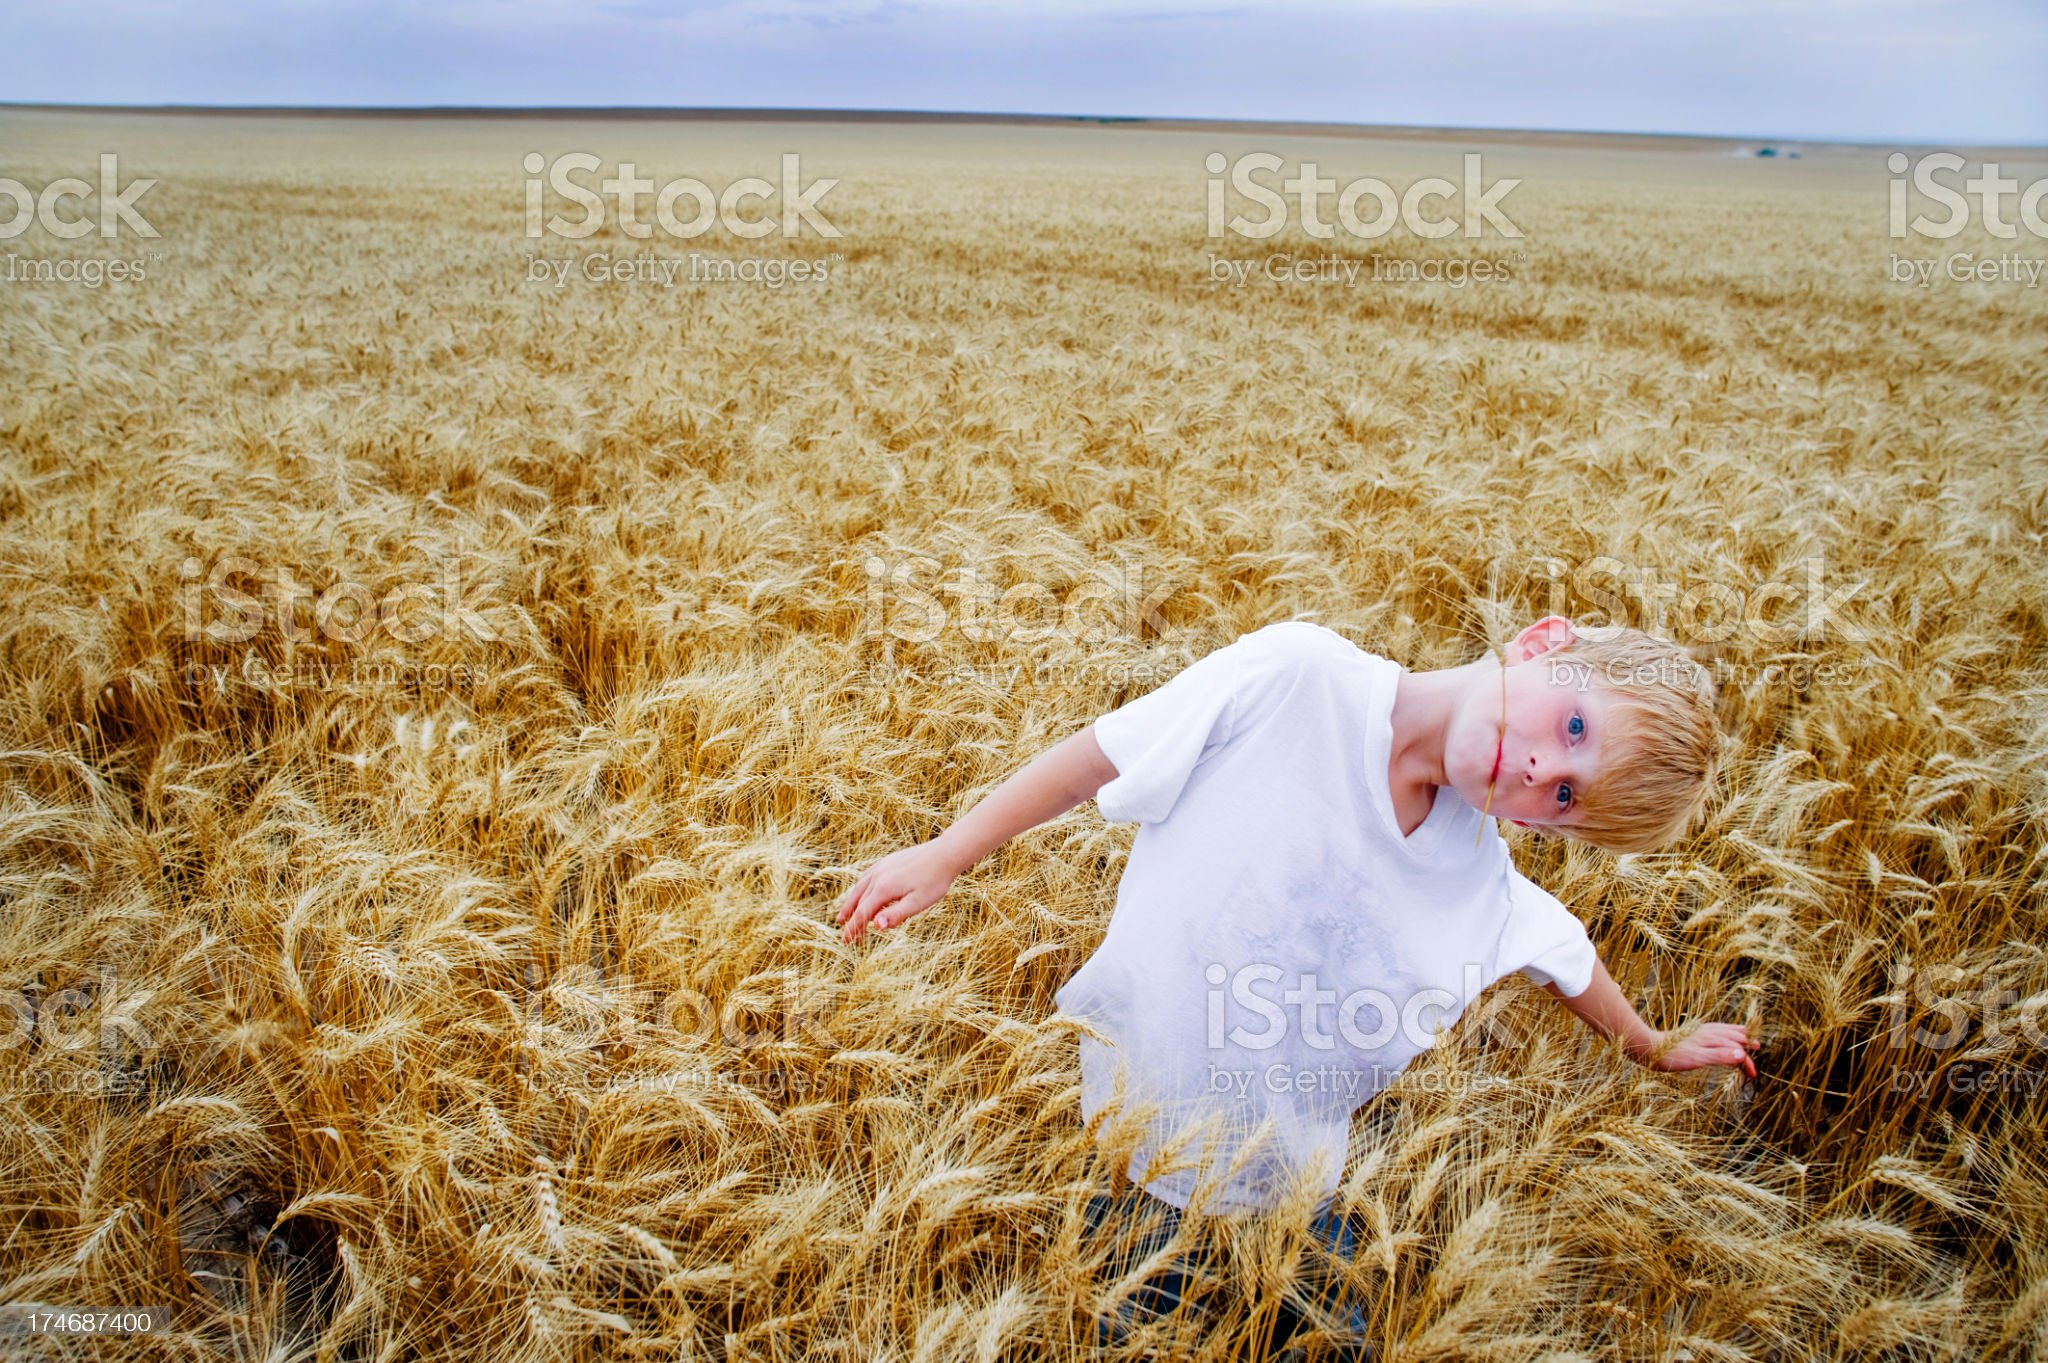 Environmental Portrait of Rural Boy in  Wheat Field at Harvest royalty-free stock photo